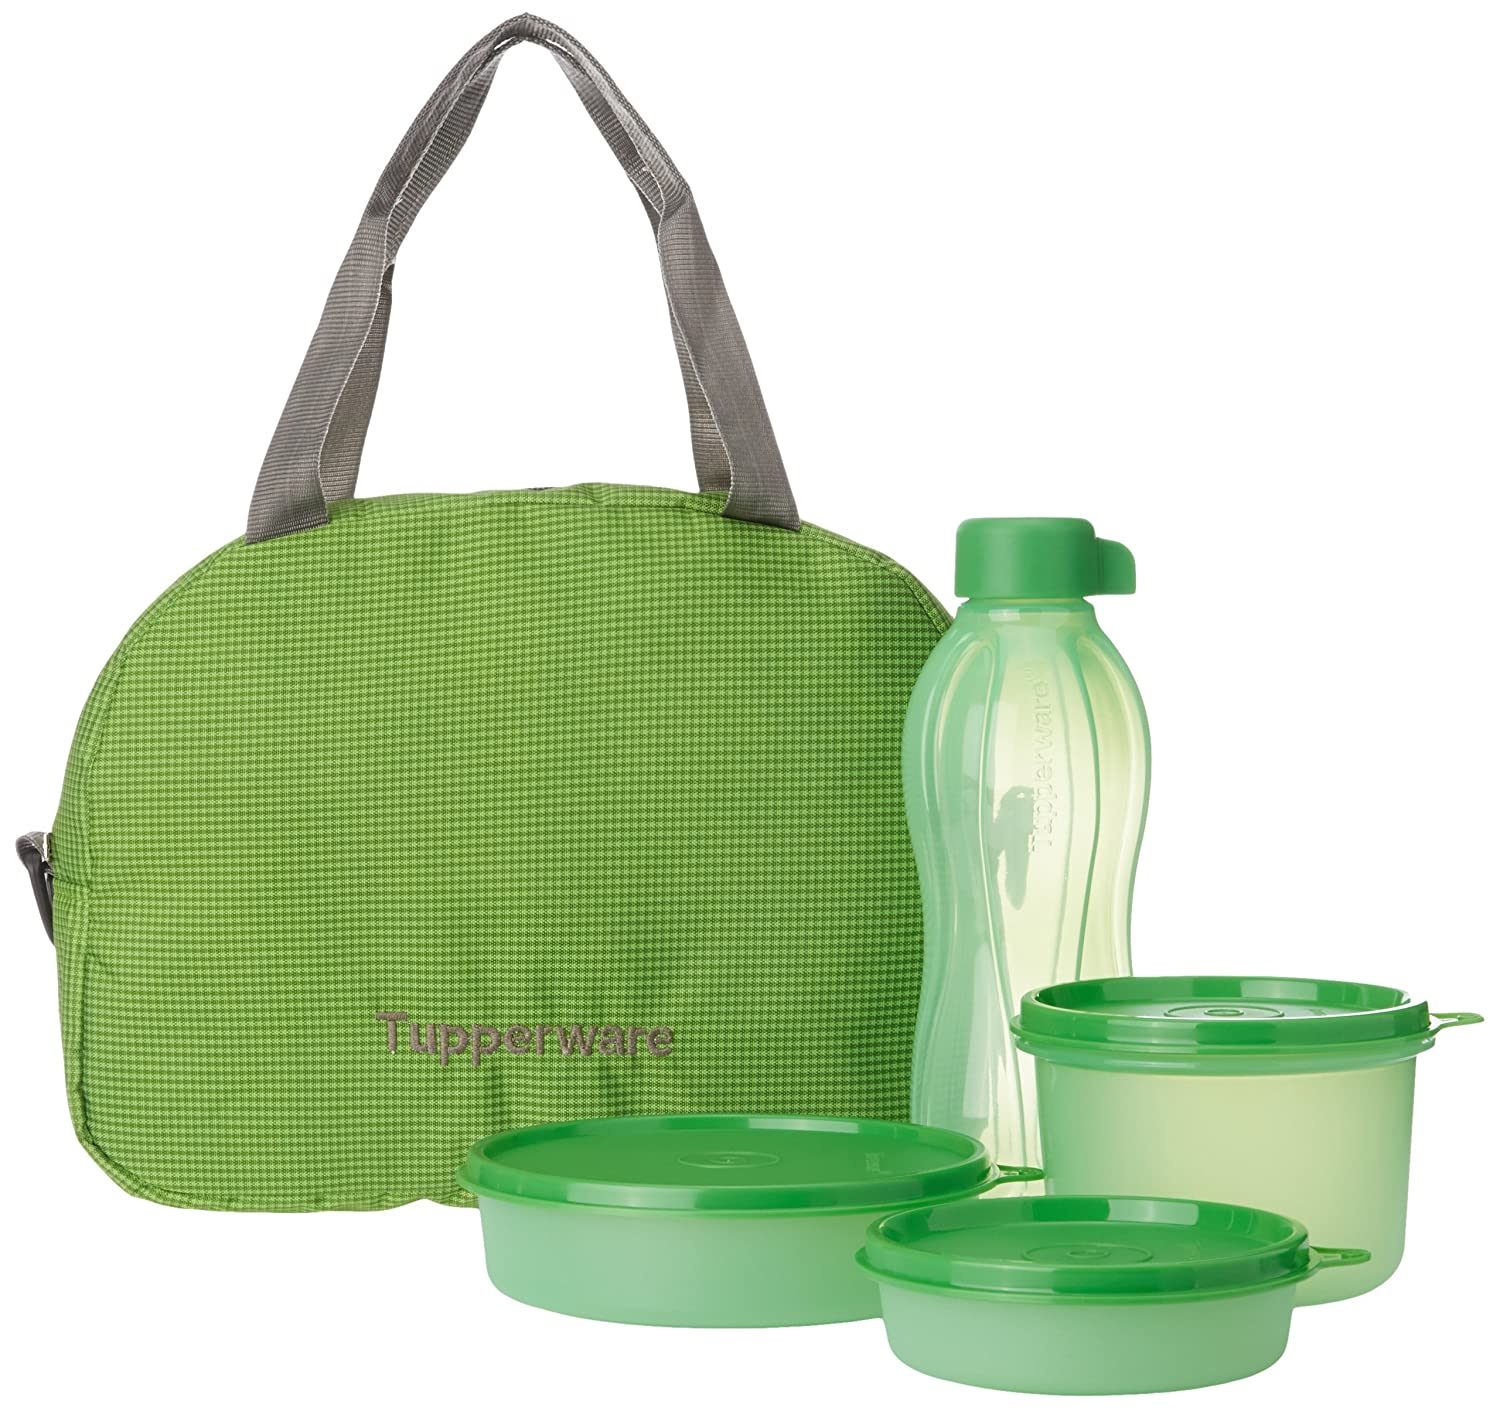 Amazon.com: Tupperware Sling-A-Bling Lunch Set With Designer Bag ...